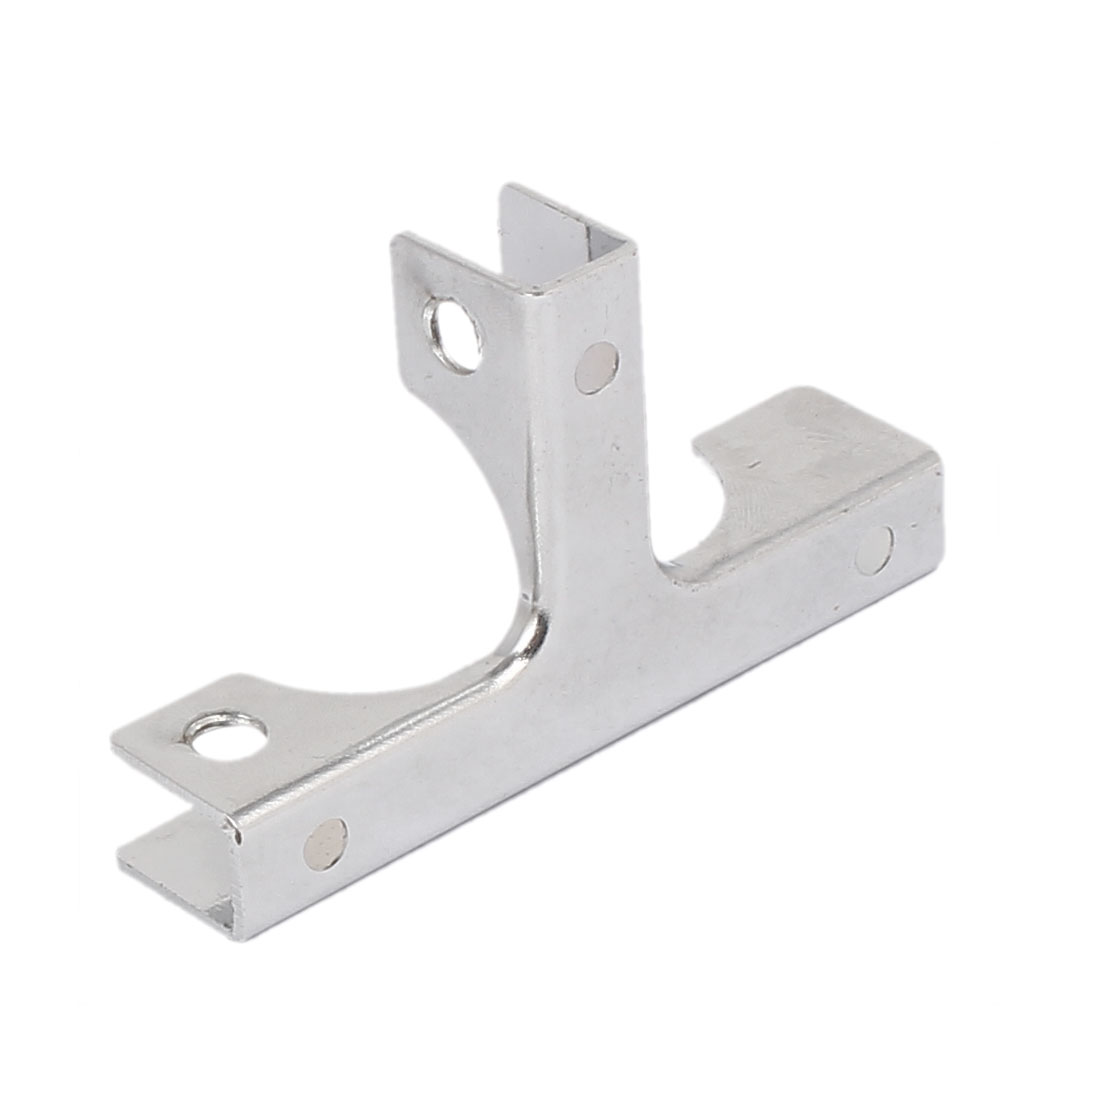 5mm-10mm Thickness Adjustable Glass Shelf T Shape Bracket Support Clip Clamp